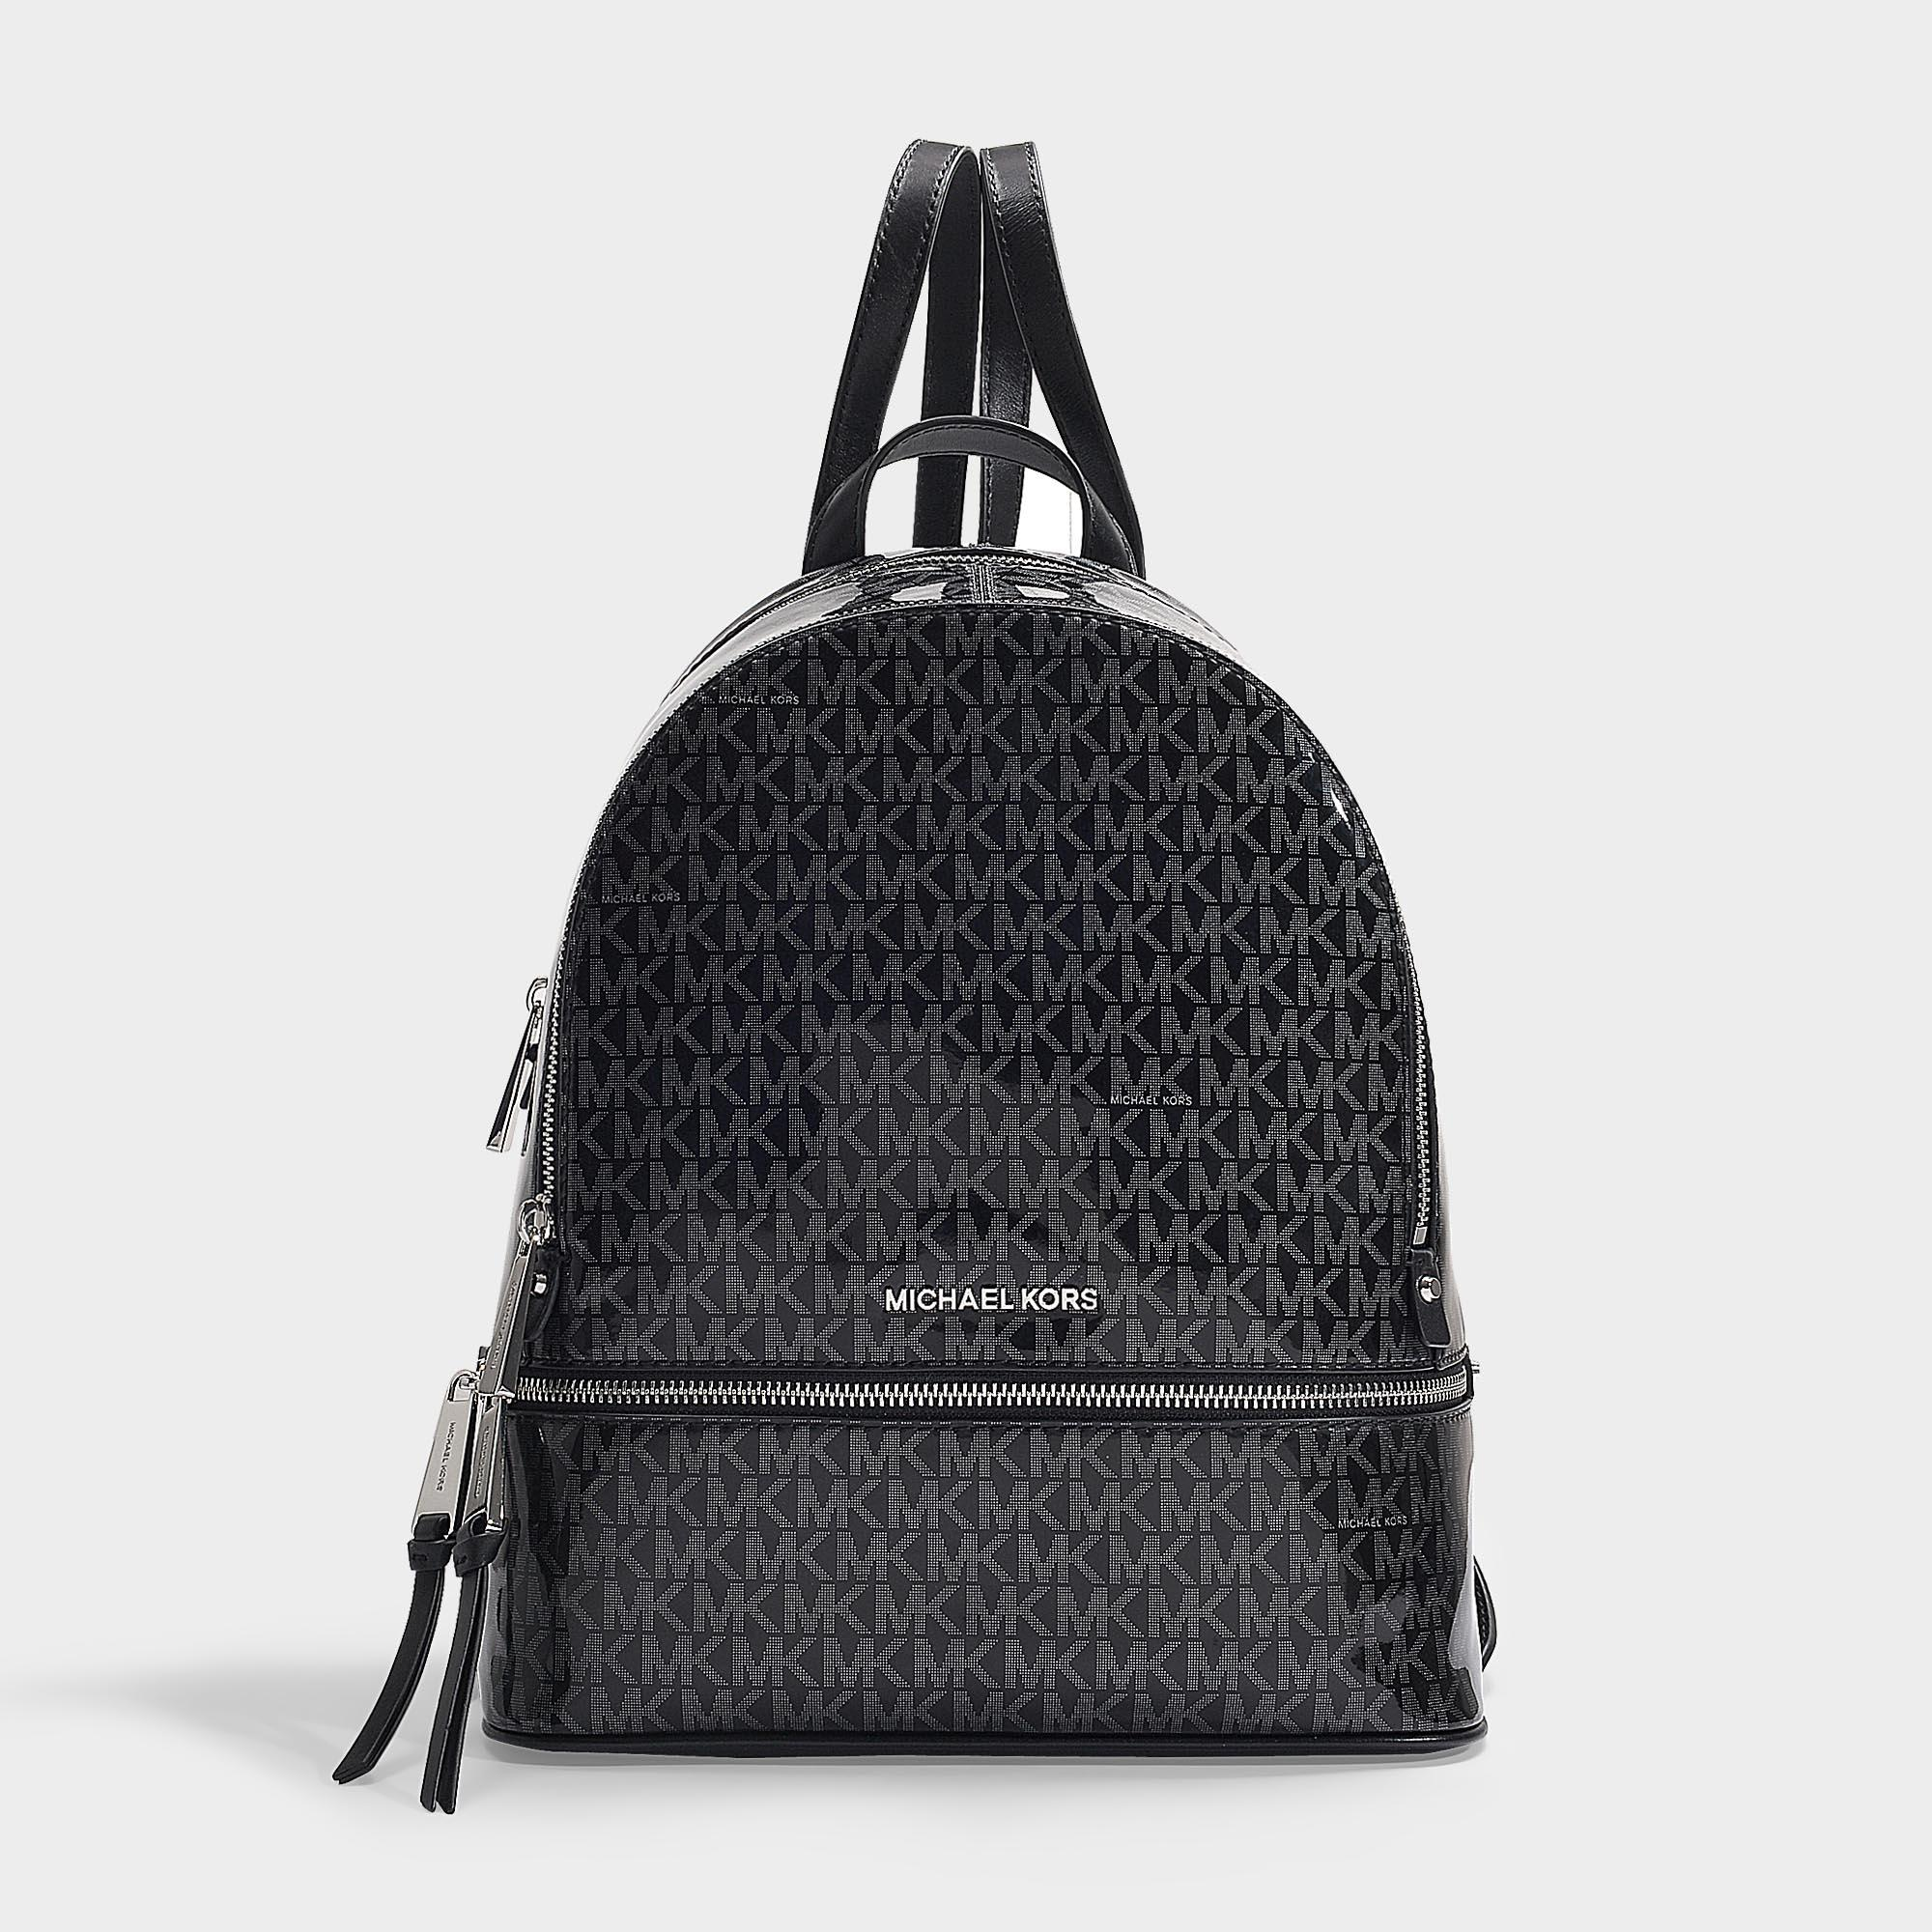 42a85a31feaf MICHAEL Michael Kors. Women's Rhea Zip Medium Backpack In Black And Silver  Pvc